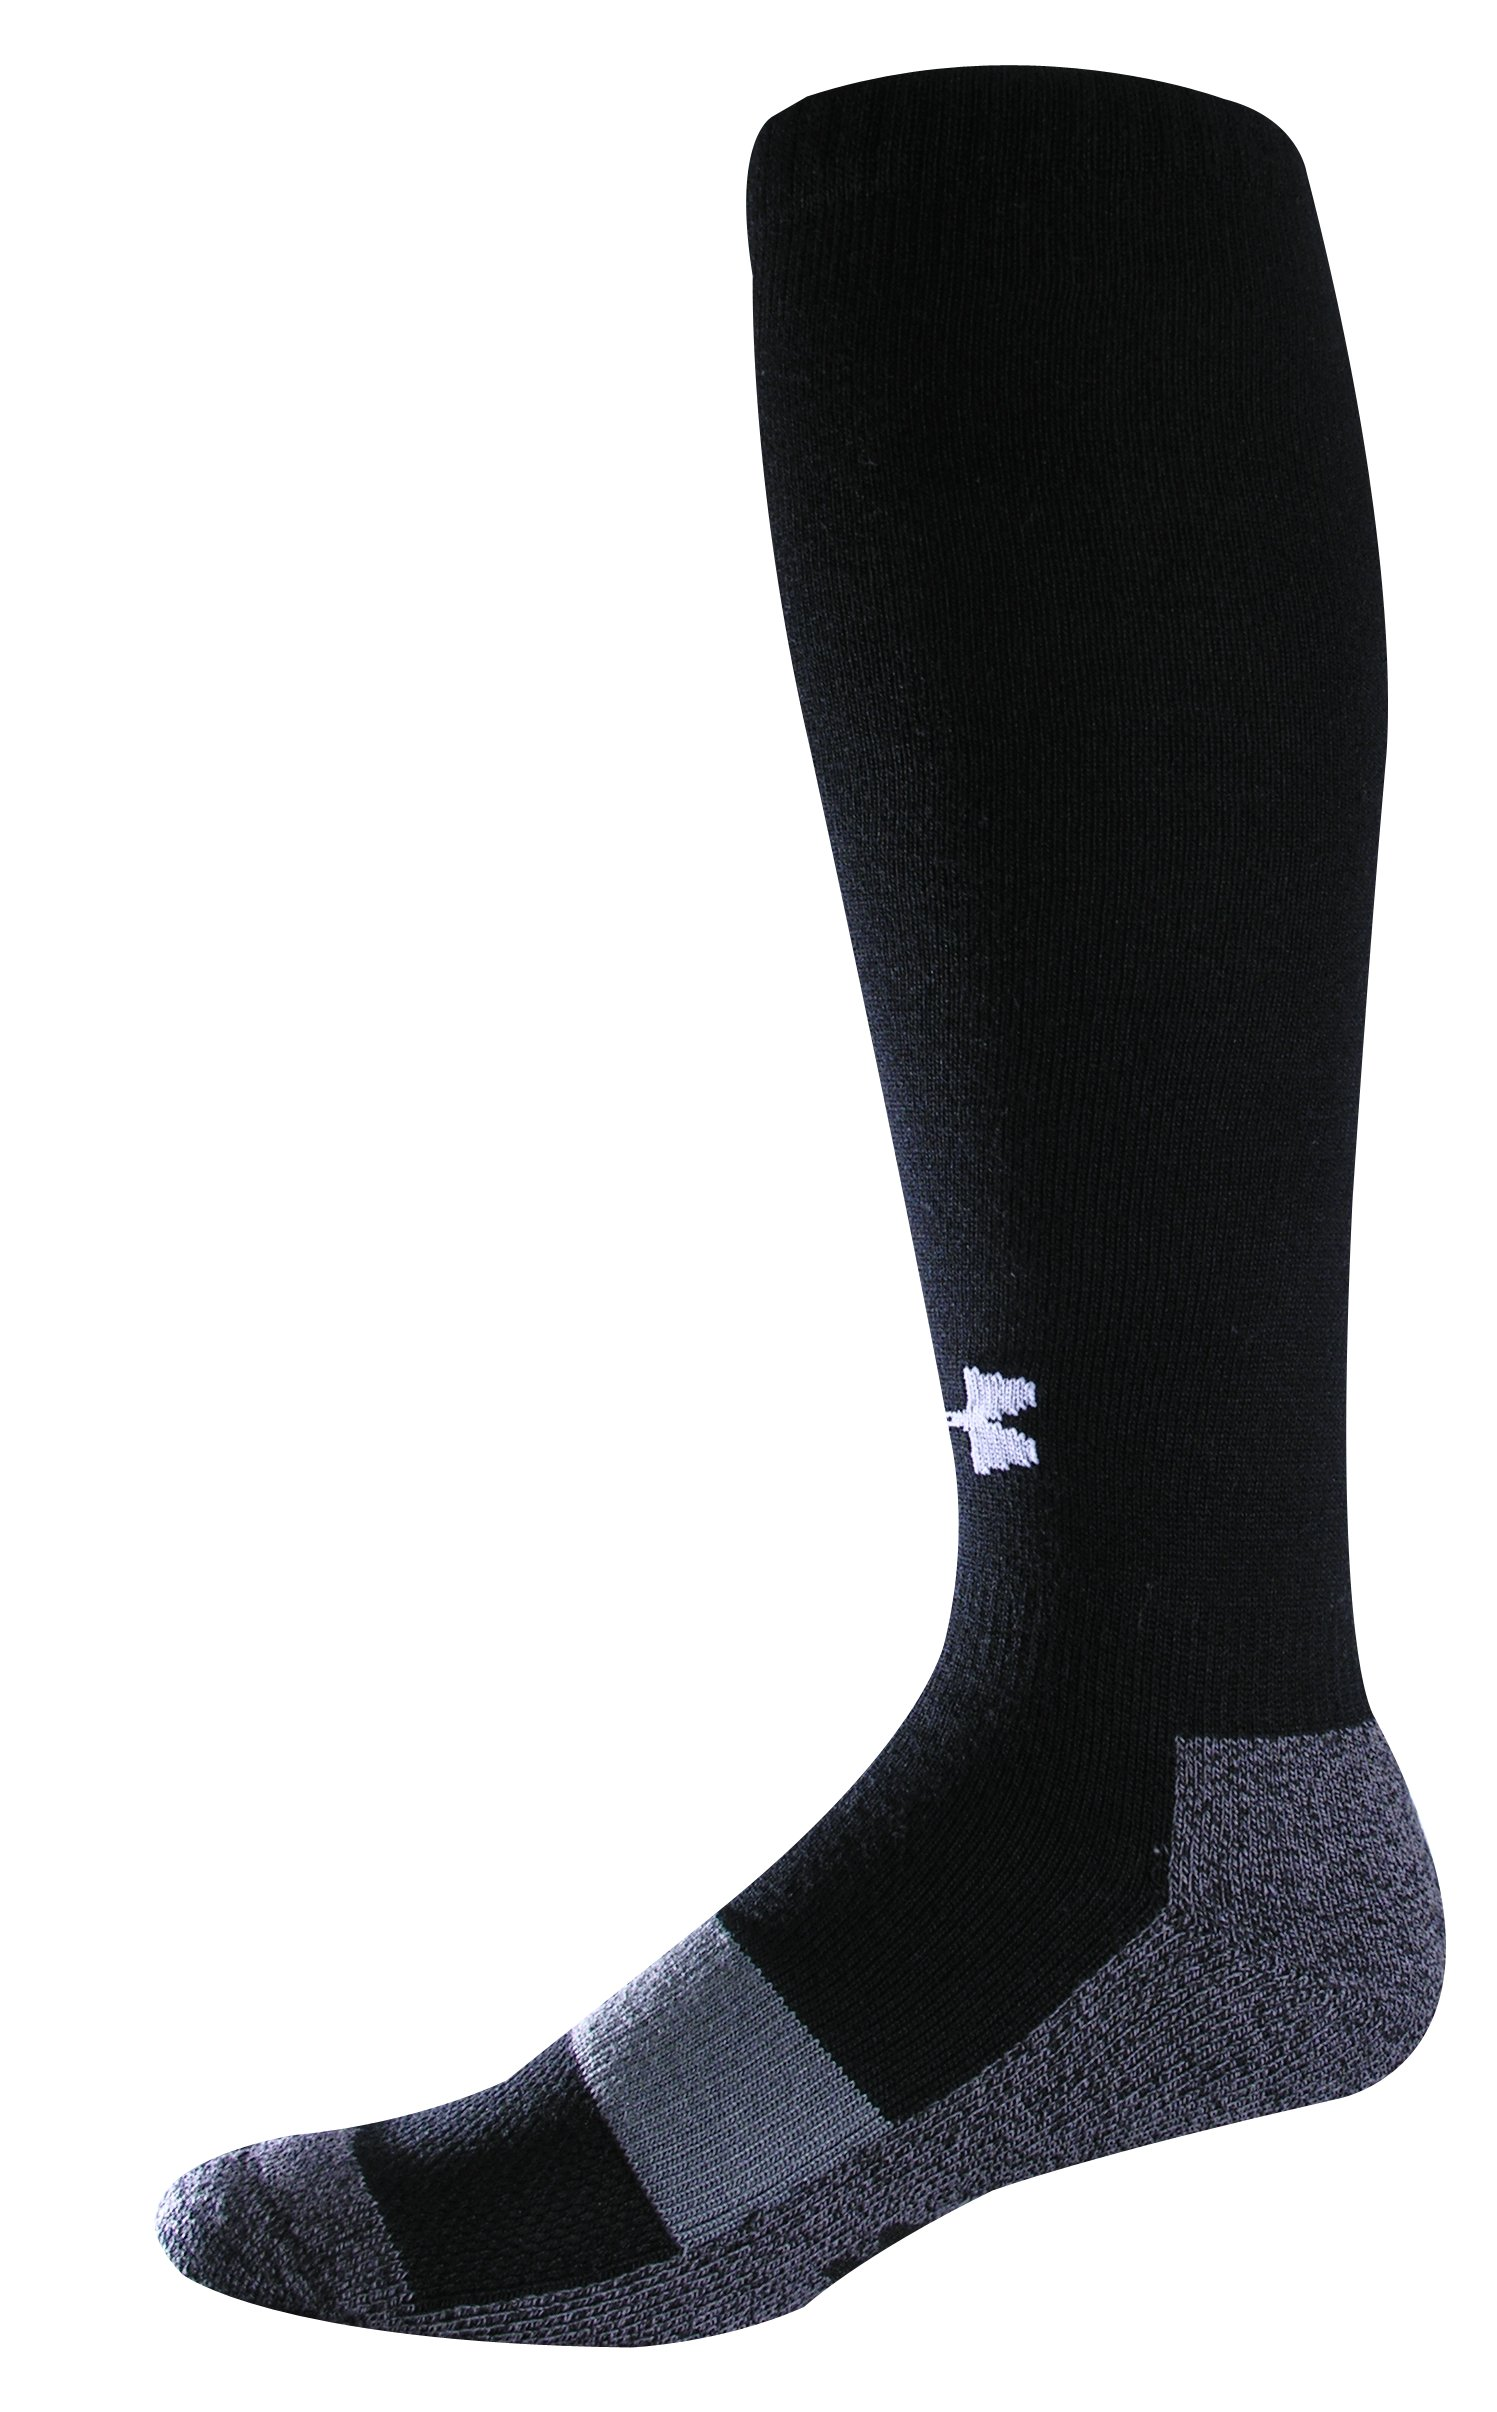 Youth Football Charged Cotton® OTC Socks, Black